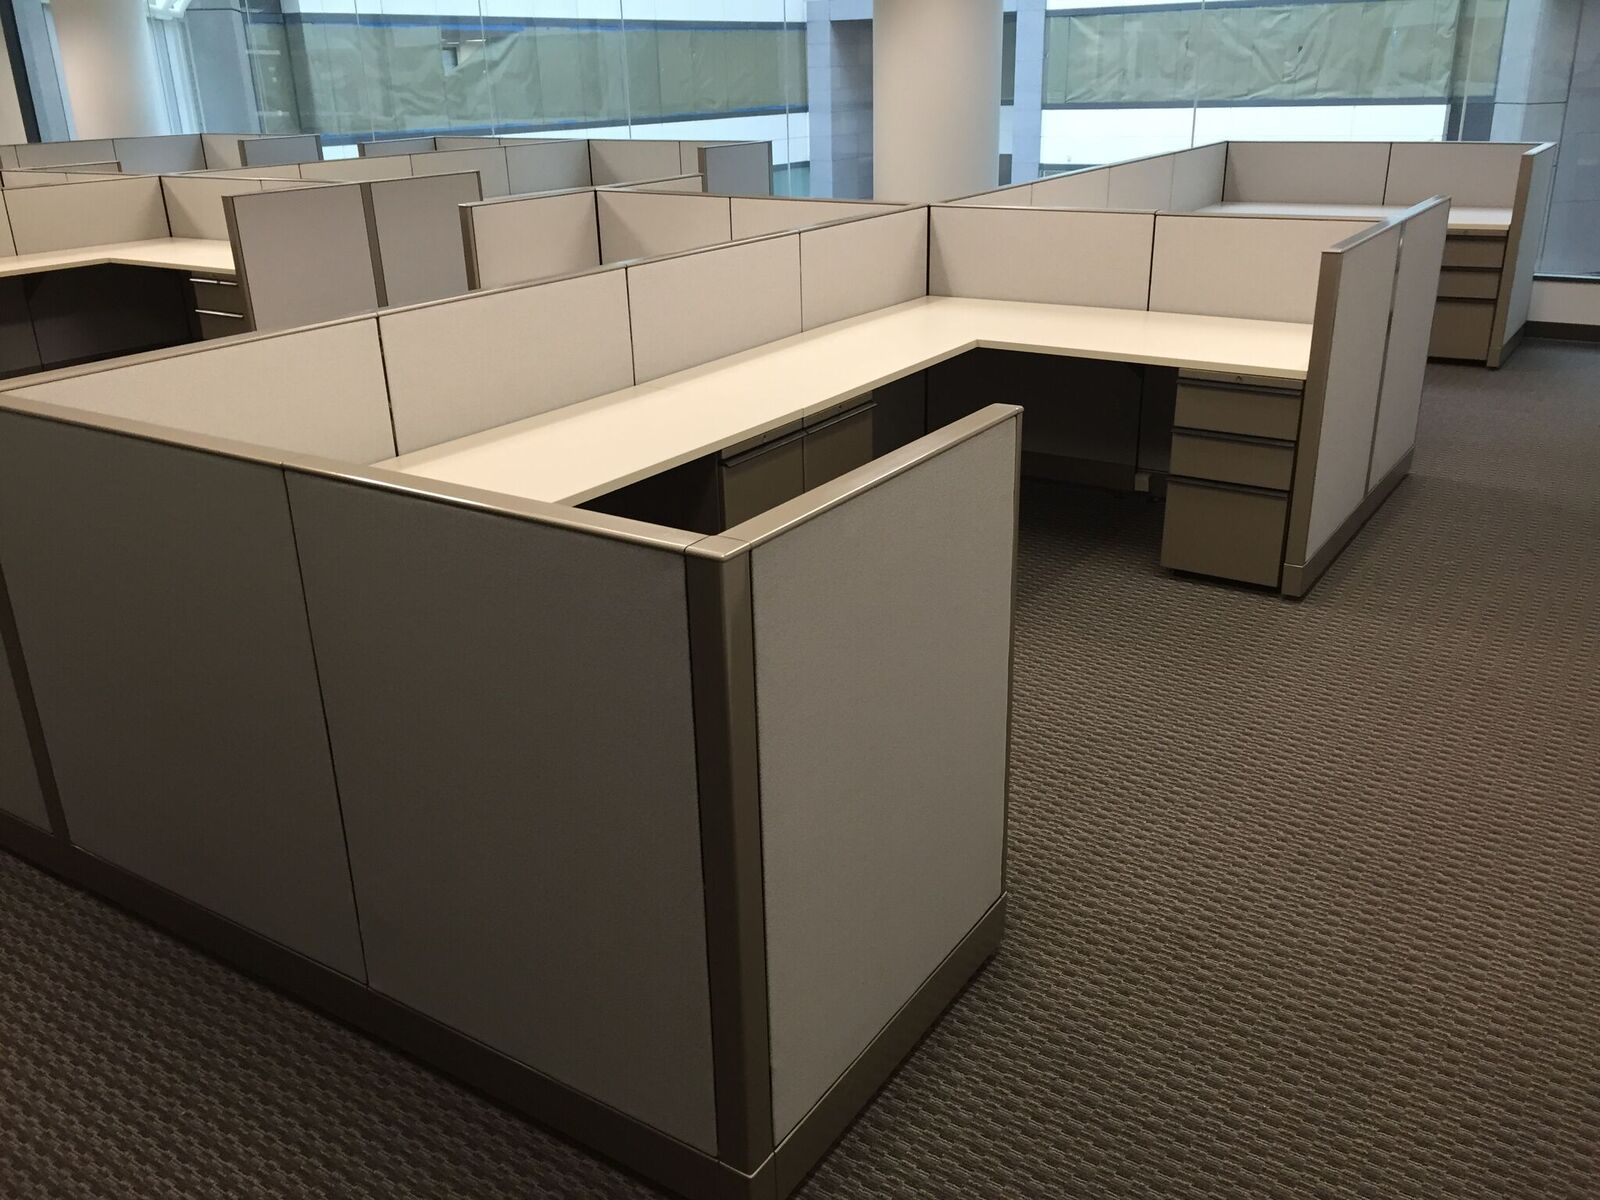 New Penn Financial, (Texas location) – Refurbished Ethospace Workstations 2015